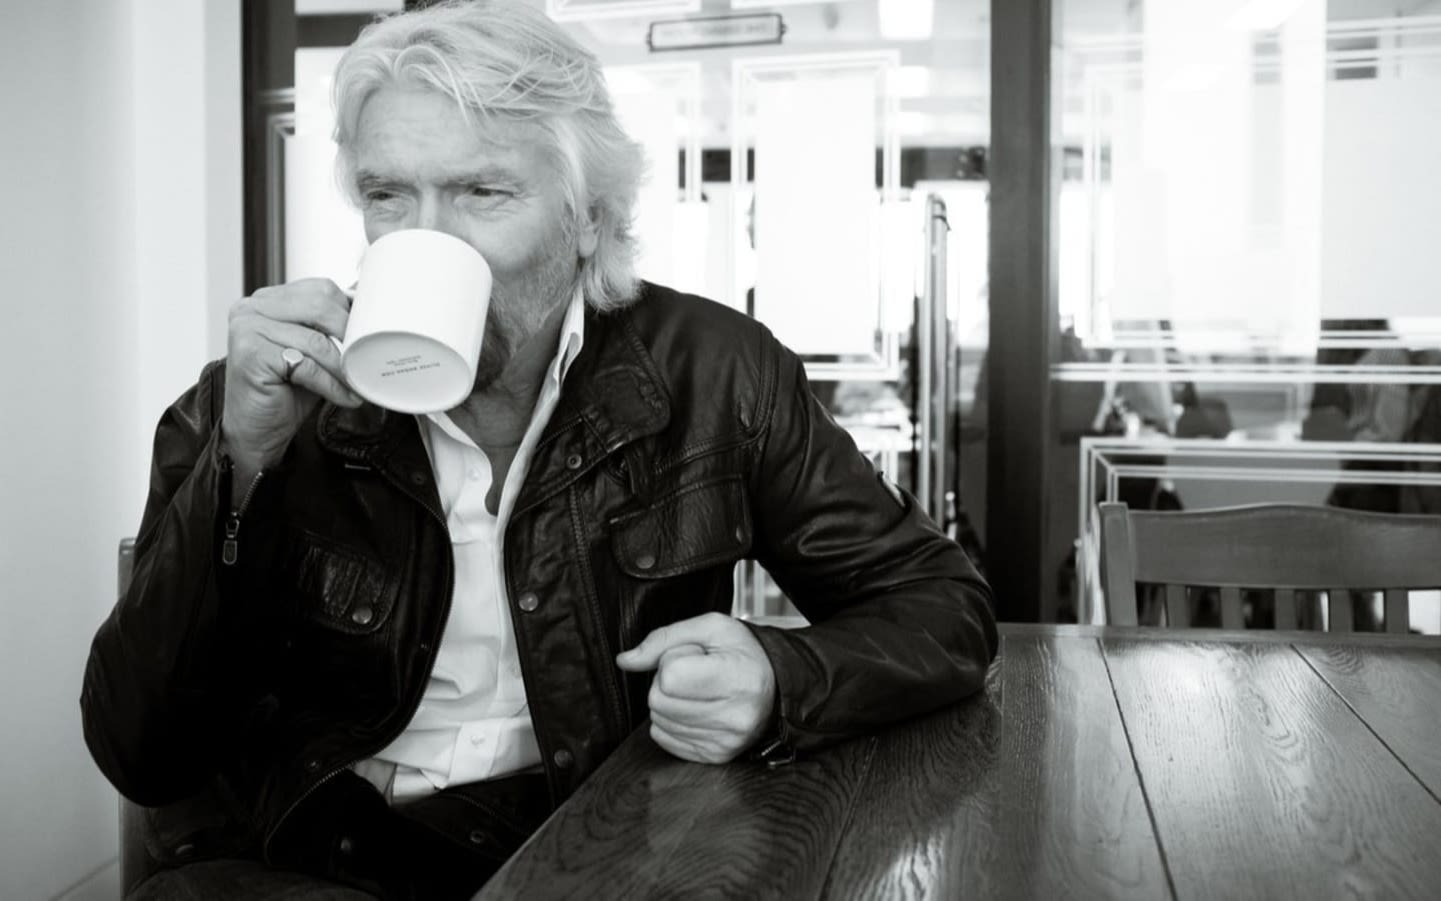 Black and white image of Richard Branson sitting at a table drinking from a mug